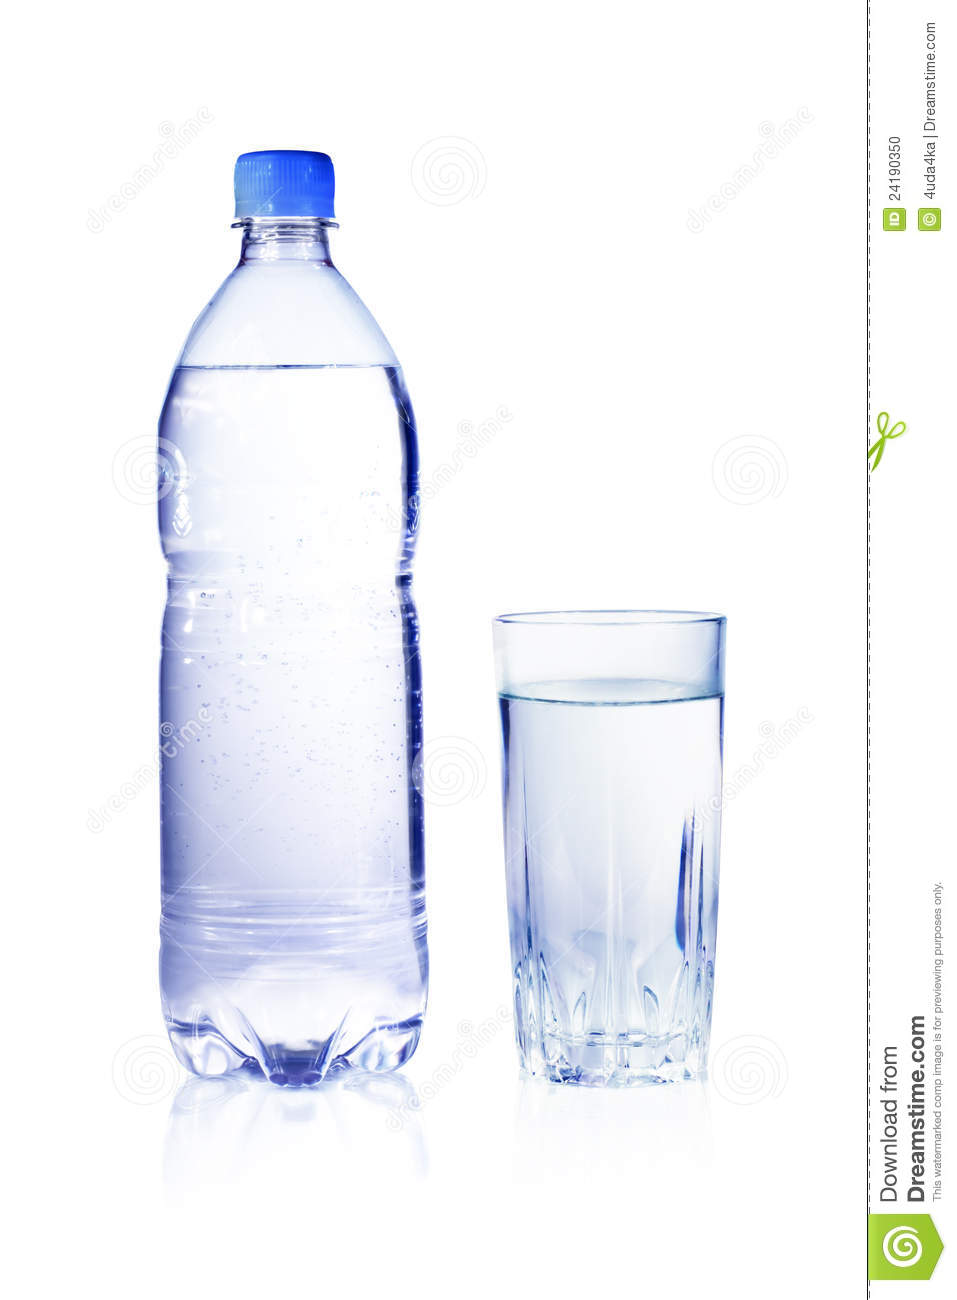 Clean And Clear Water In The Bottle And Glass Stock Photo